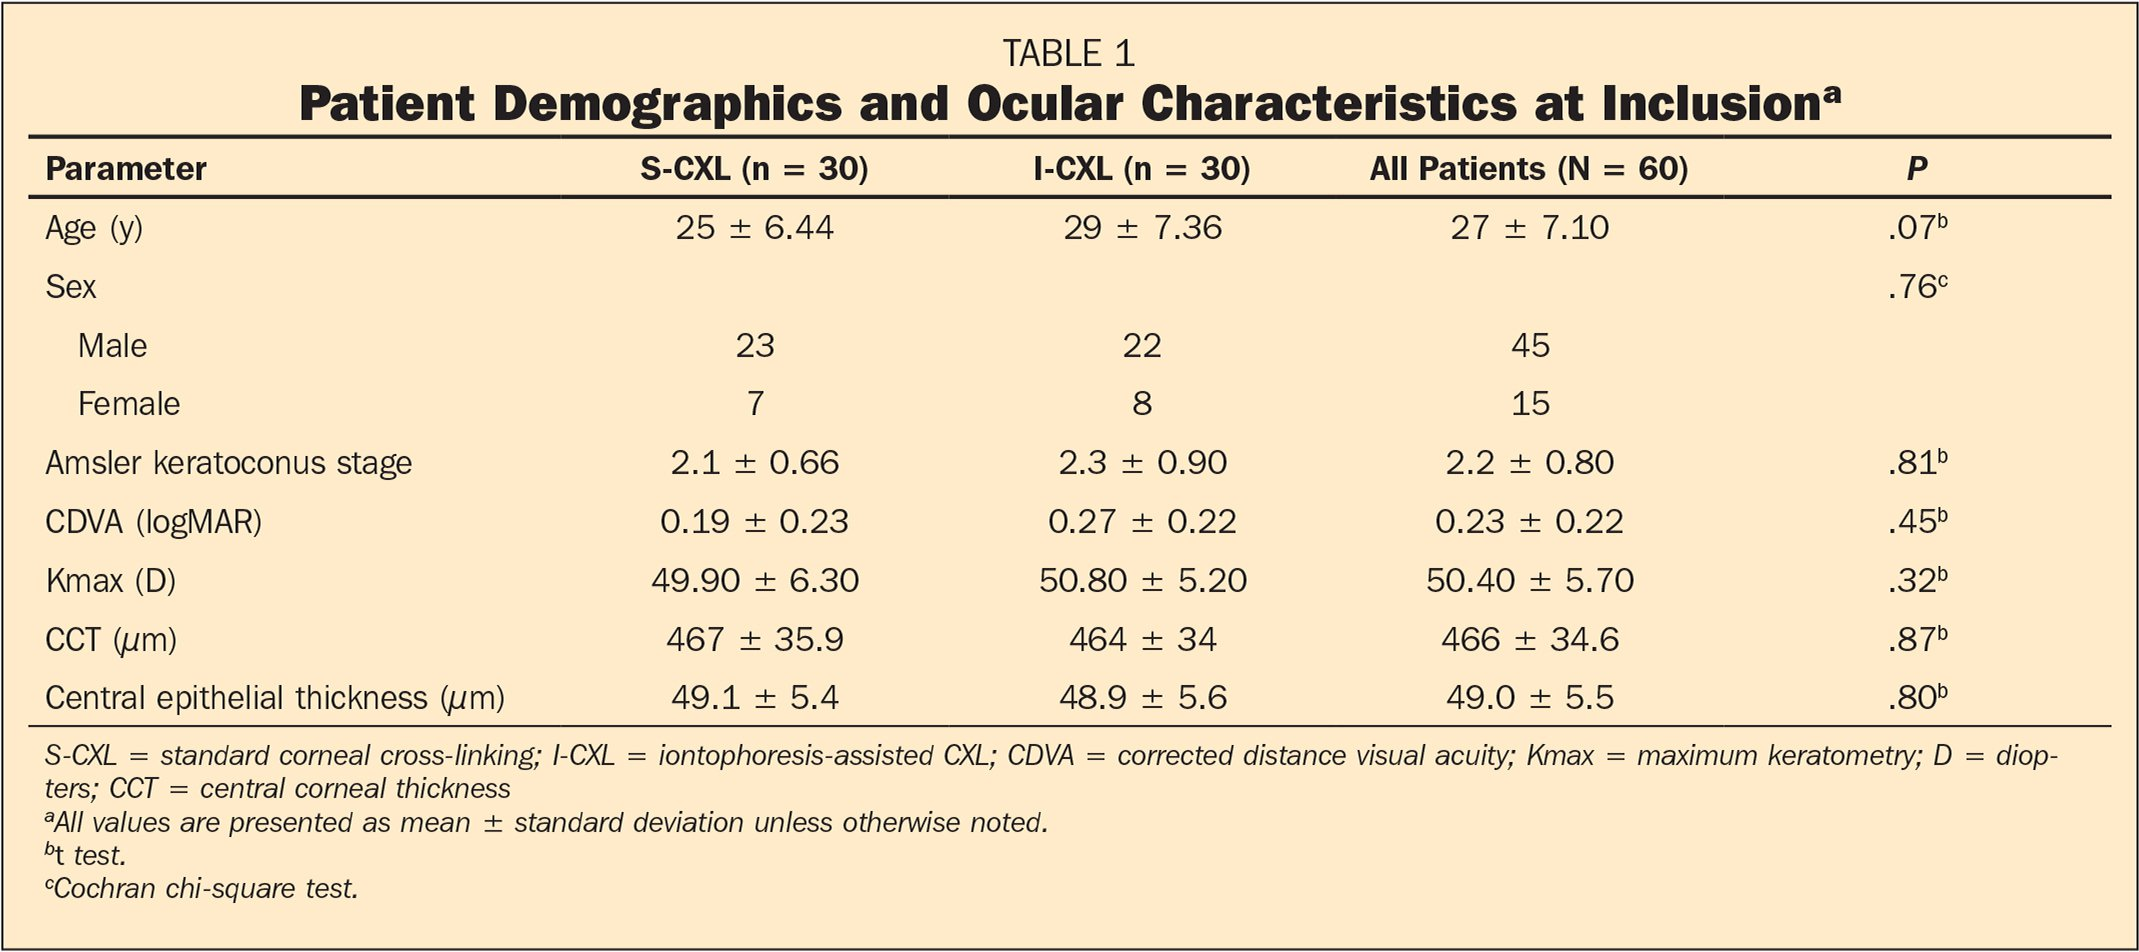 Patient Demographics and Ocular Characteristics at Inclusiona